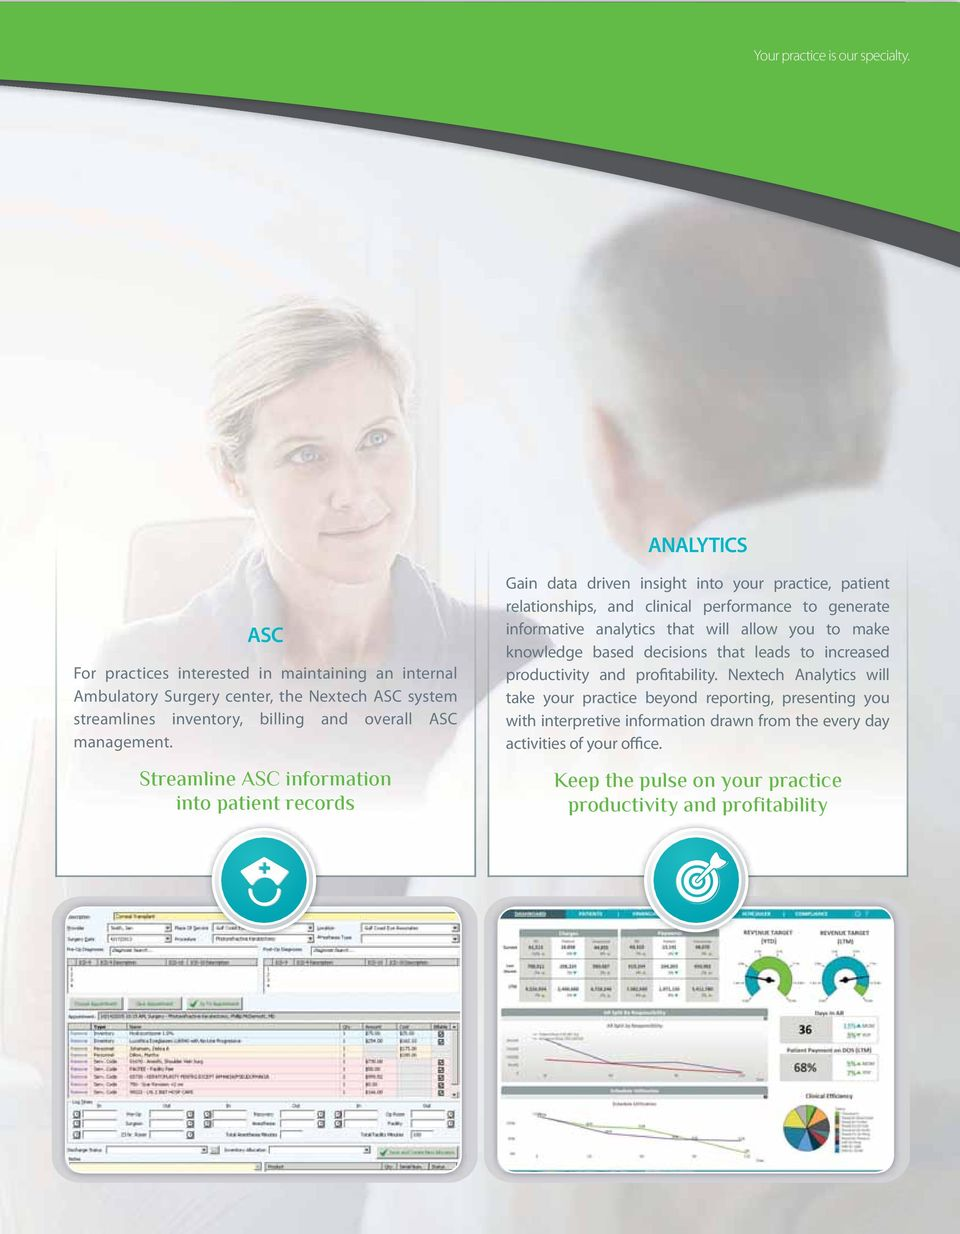 Streamline ASC information into patient records Gain data driven insight into your practice, patient relationships, and clinical performance to generate informative analytics